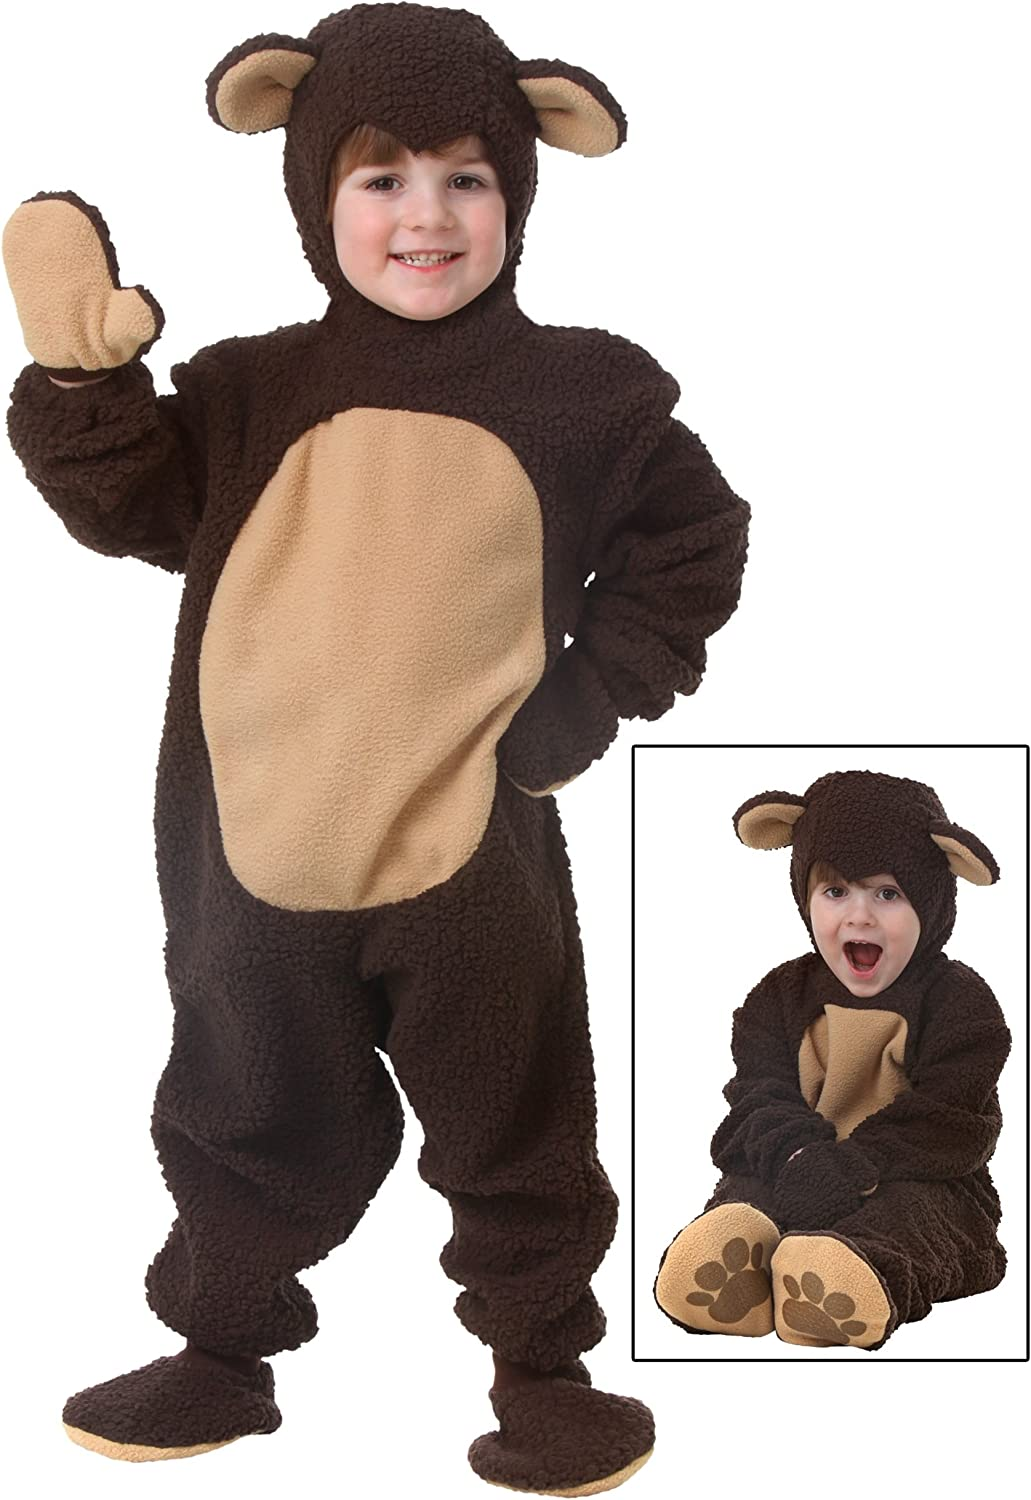 Fun Our shop most popular Costumes Toddler Bear Kids Special Campaign Costume for Teddy